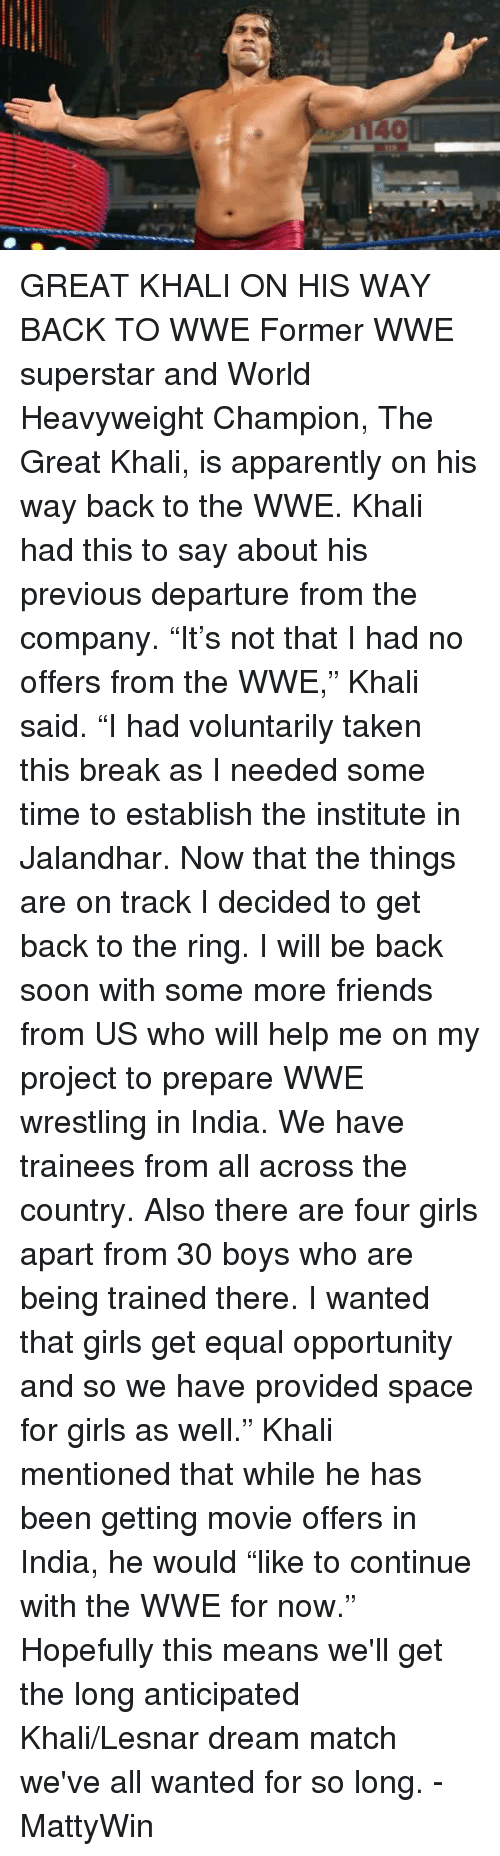 """great khali: GREAT KHALI ON HIS WAY BACK TO WWE   Former WWE superstar and World Heavyweight Champion, The Great Khali, is apparently on his way back to the WWE. Khali had this to say about his previous departure from the company.   """"It's not that I had no offers from the WWE,"""" Khali said. """"I had voluntarily taken this break as I needed some time to establish the institute in Jalandhar. Now that the things are on track I decided to get back to the ring. I will be back soon with some more friends from US who will help me on my project to prepare WWE wrestling in India. We have trainees from all across the country. Also there are four girls apart from 30 boys who are being trained there. I wanted that girls get equal opportunity and so we have provided space for girls as well."""" Khali mentioned that while he has been getting movie offers in India, he would """"like to continue with the WWE for now.""""  Hopefully this means we'll get the long anticipated Khali/Lesnar dream match we've all wanted for so long.   -MattyWin"""